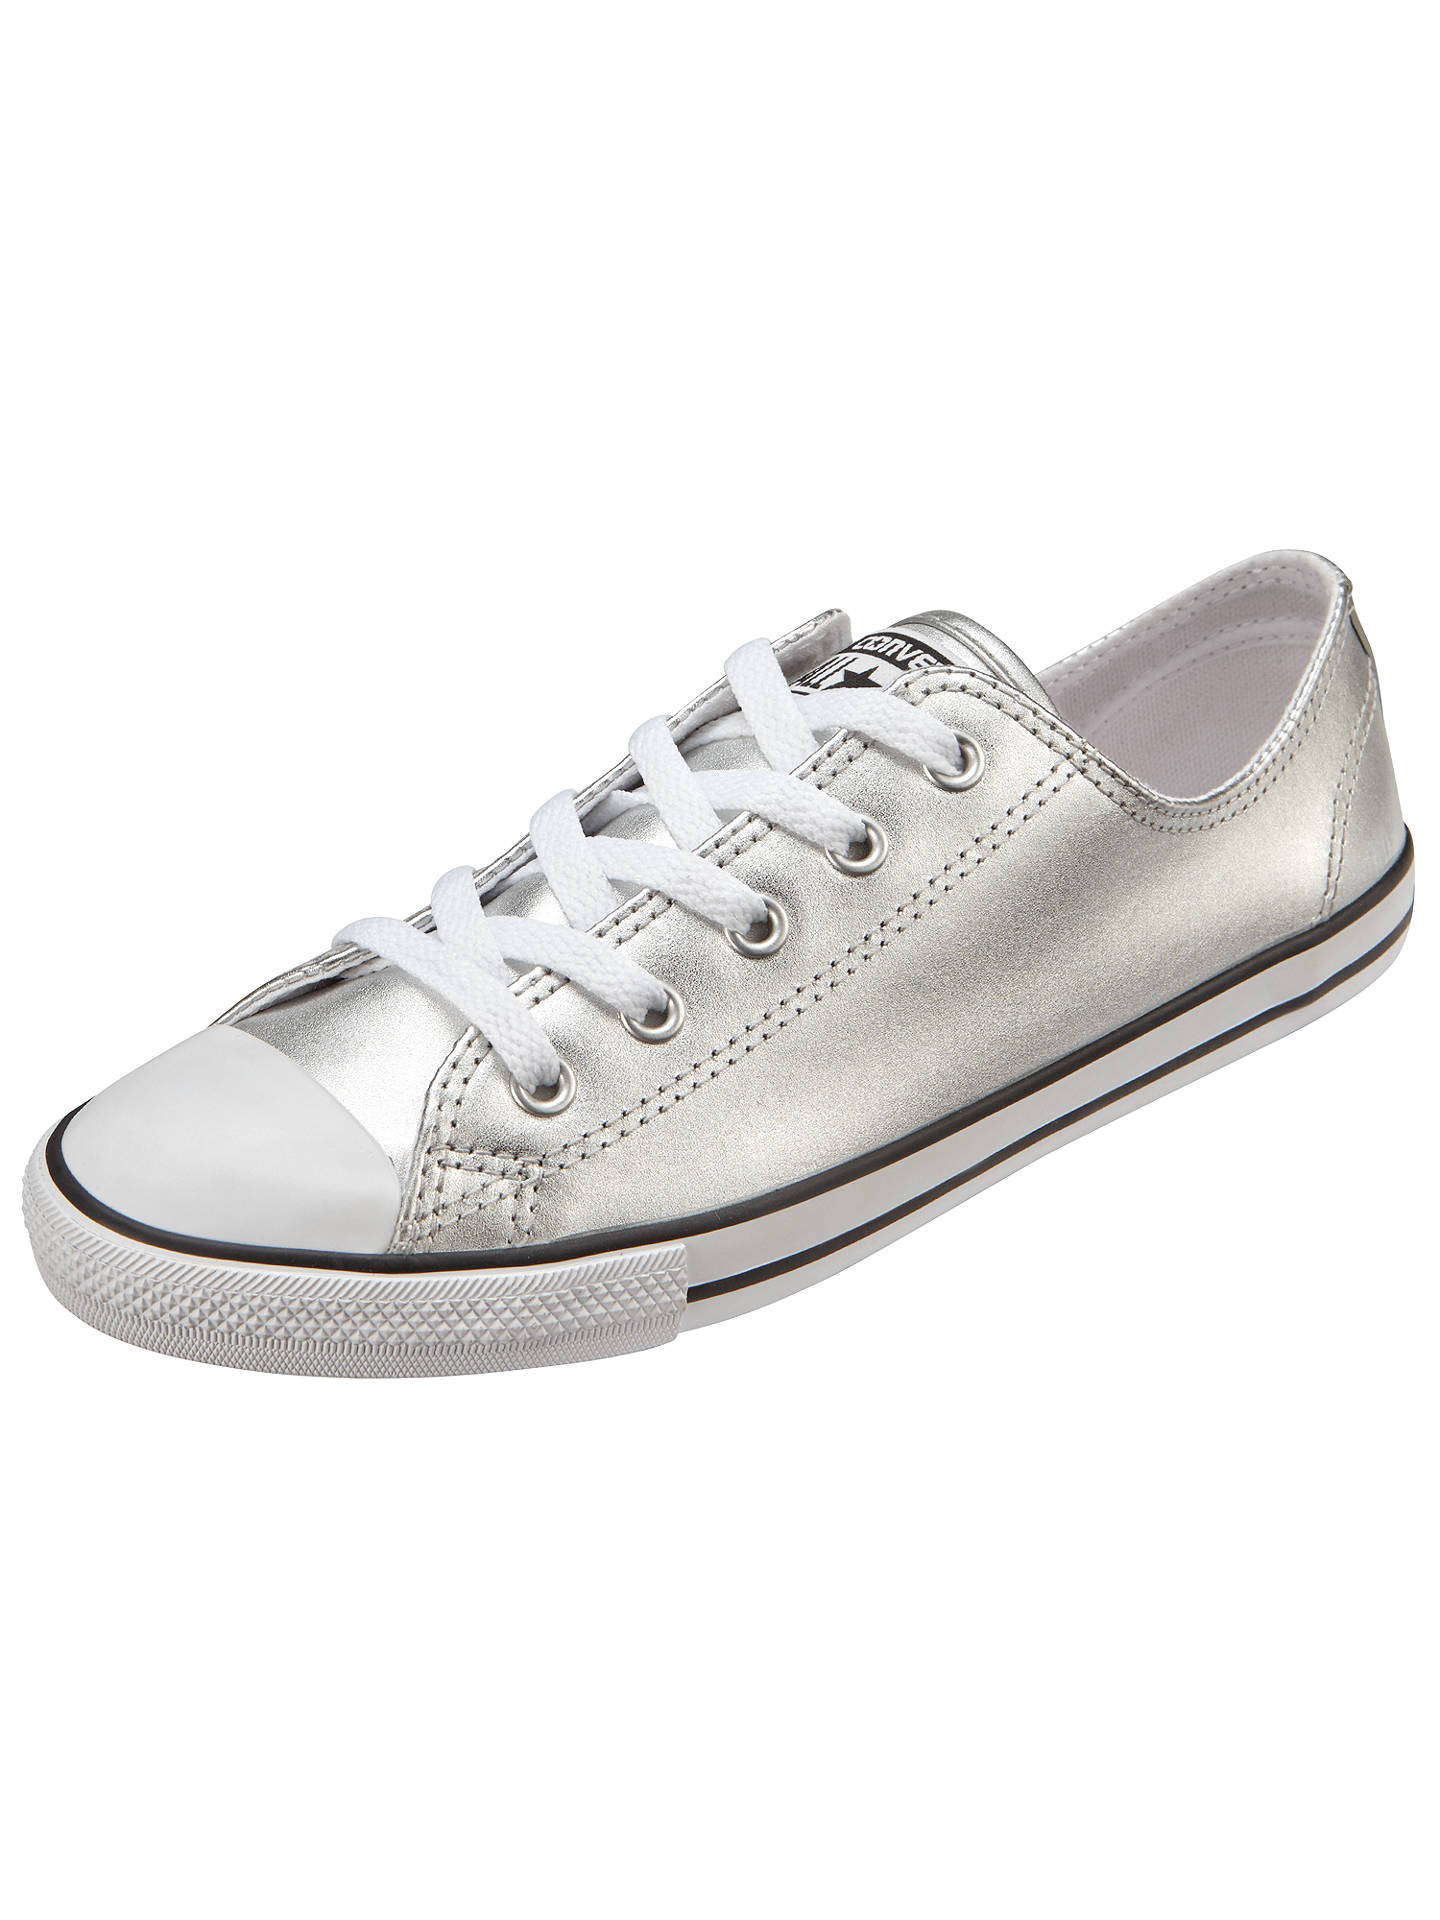 1fc6d580878ca4 Buy Converse Chuck Taylor All Star Dainty Ox Trainers